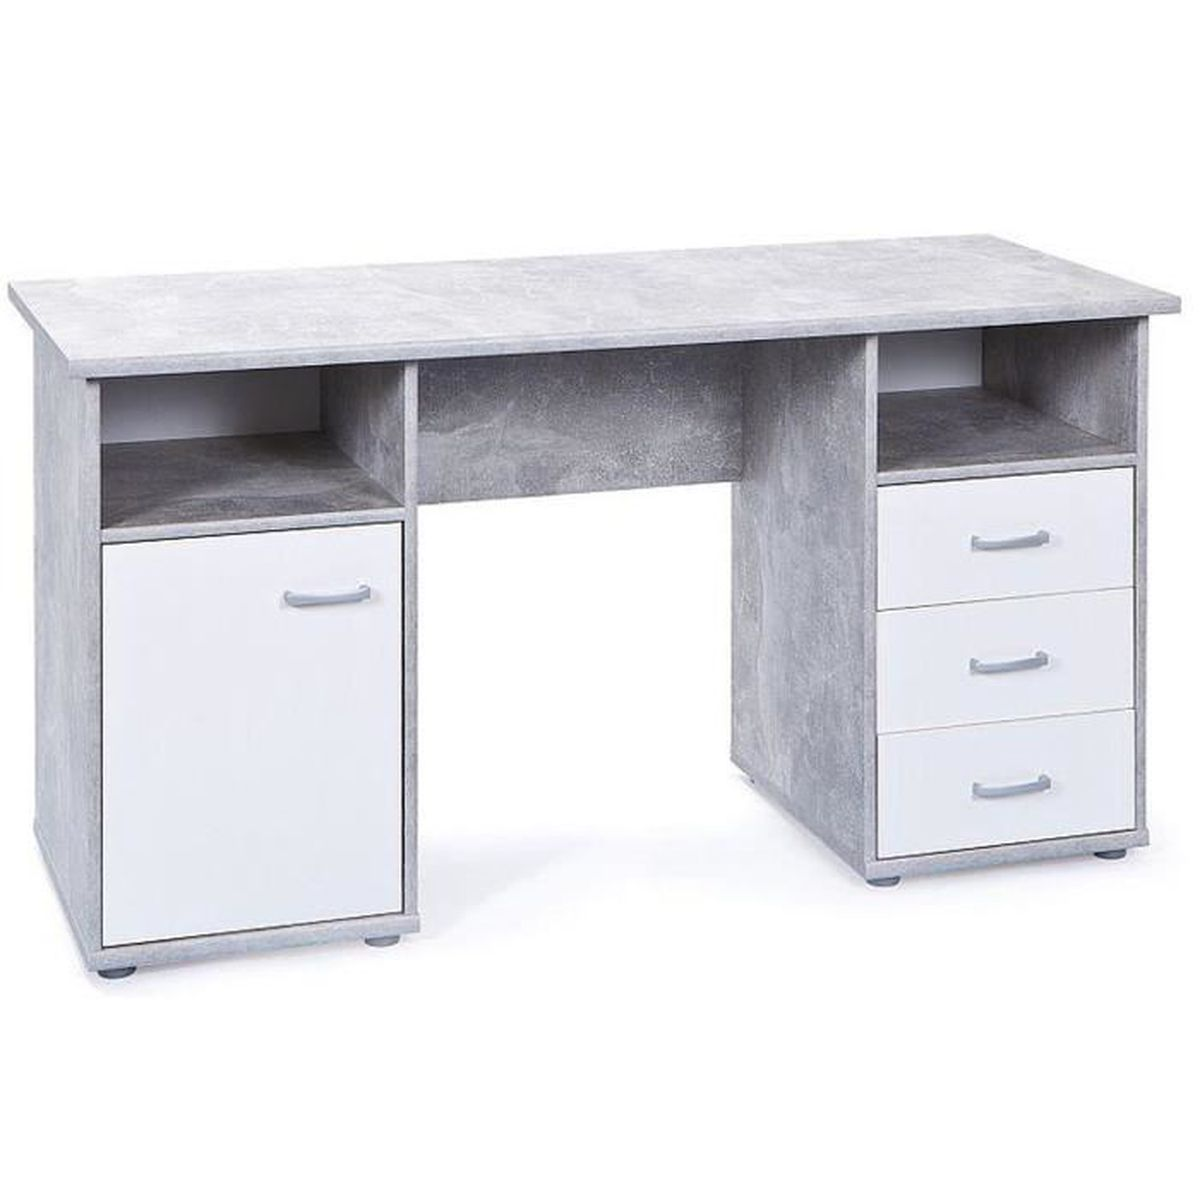 bureau en b ton avec 3 tiroirs 1 porte et 2 niches coloris gris clair blanc dim l 148 x p. Black Bedroom Furniture Sets. Home Design Ideas